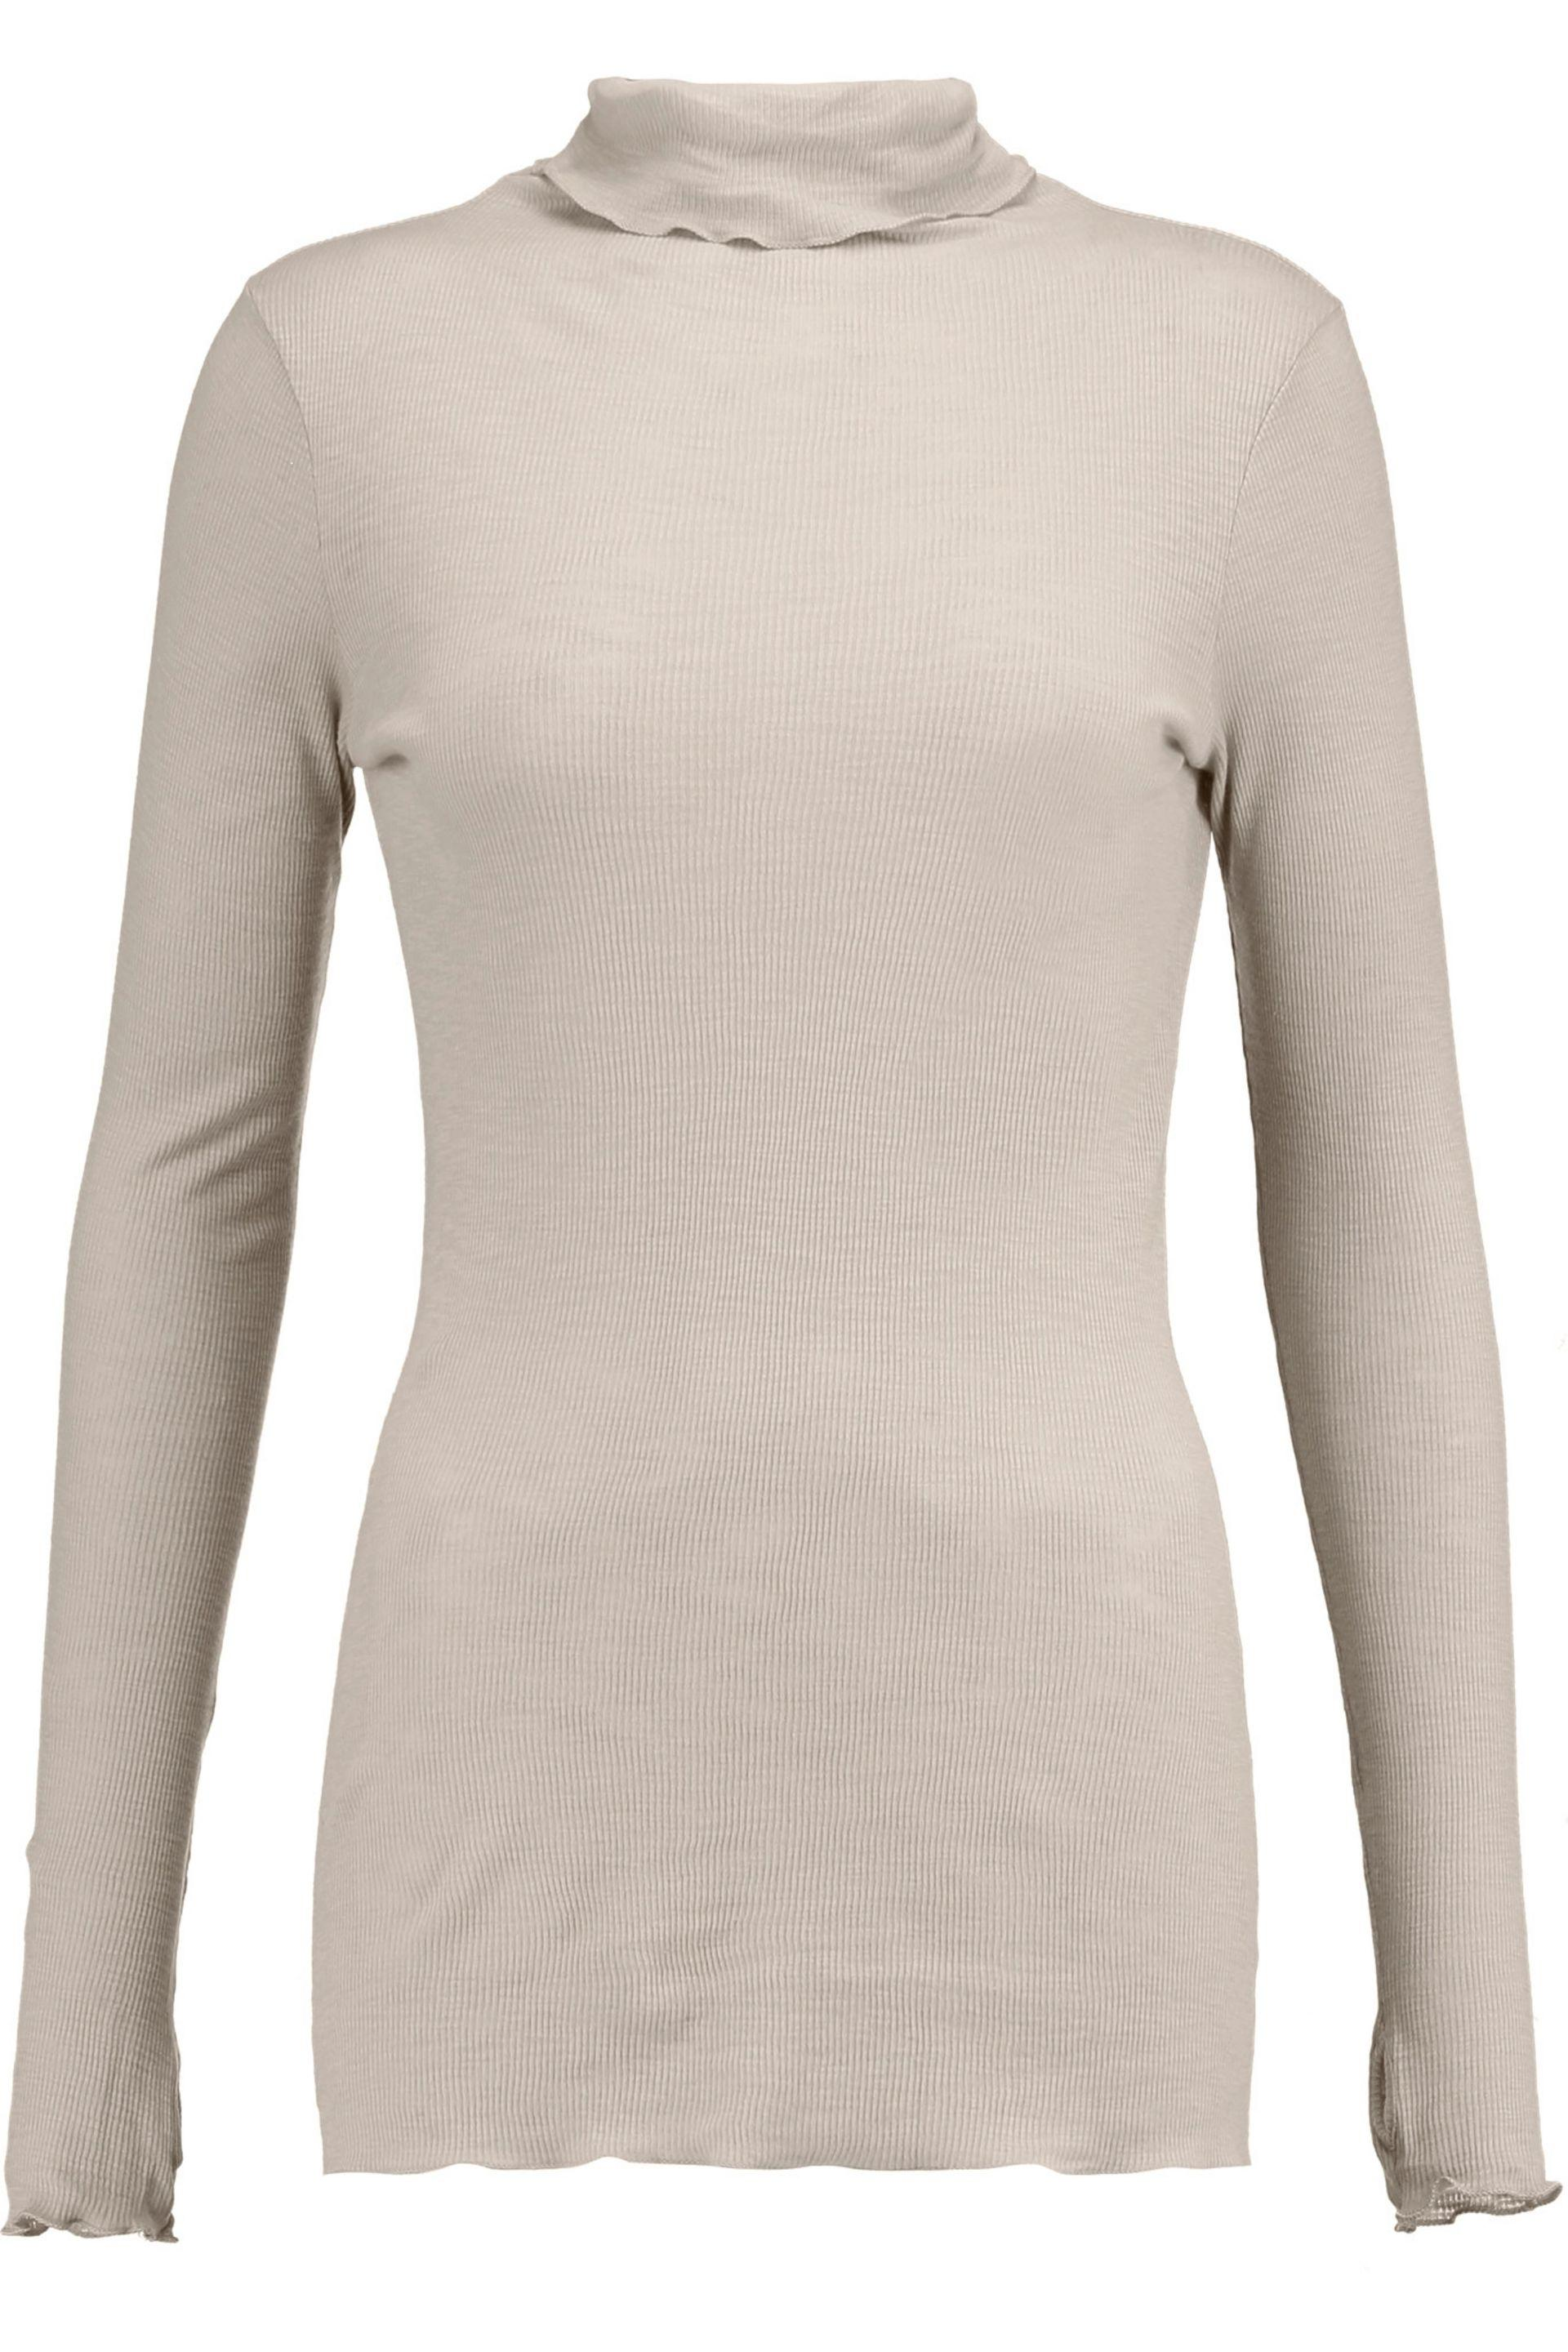 Enza Costa. Women's Ribbed Cotton-jersey Turtleneck Sweater